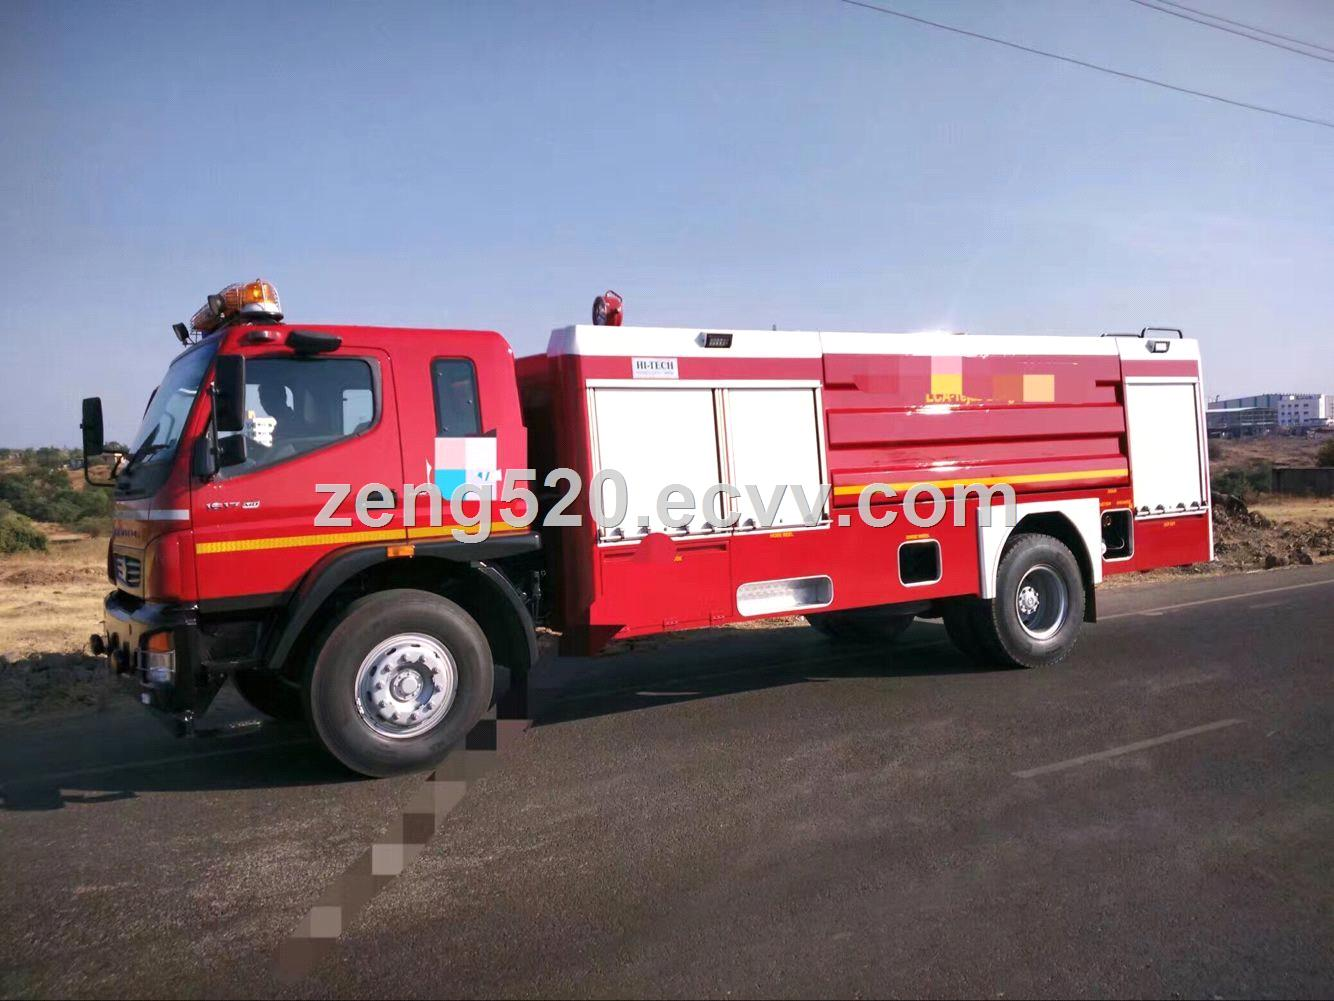 FireFighting Truck Aluminum Roller ShutterRoll up Door